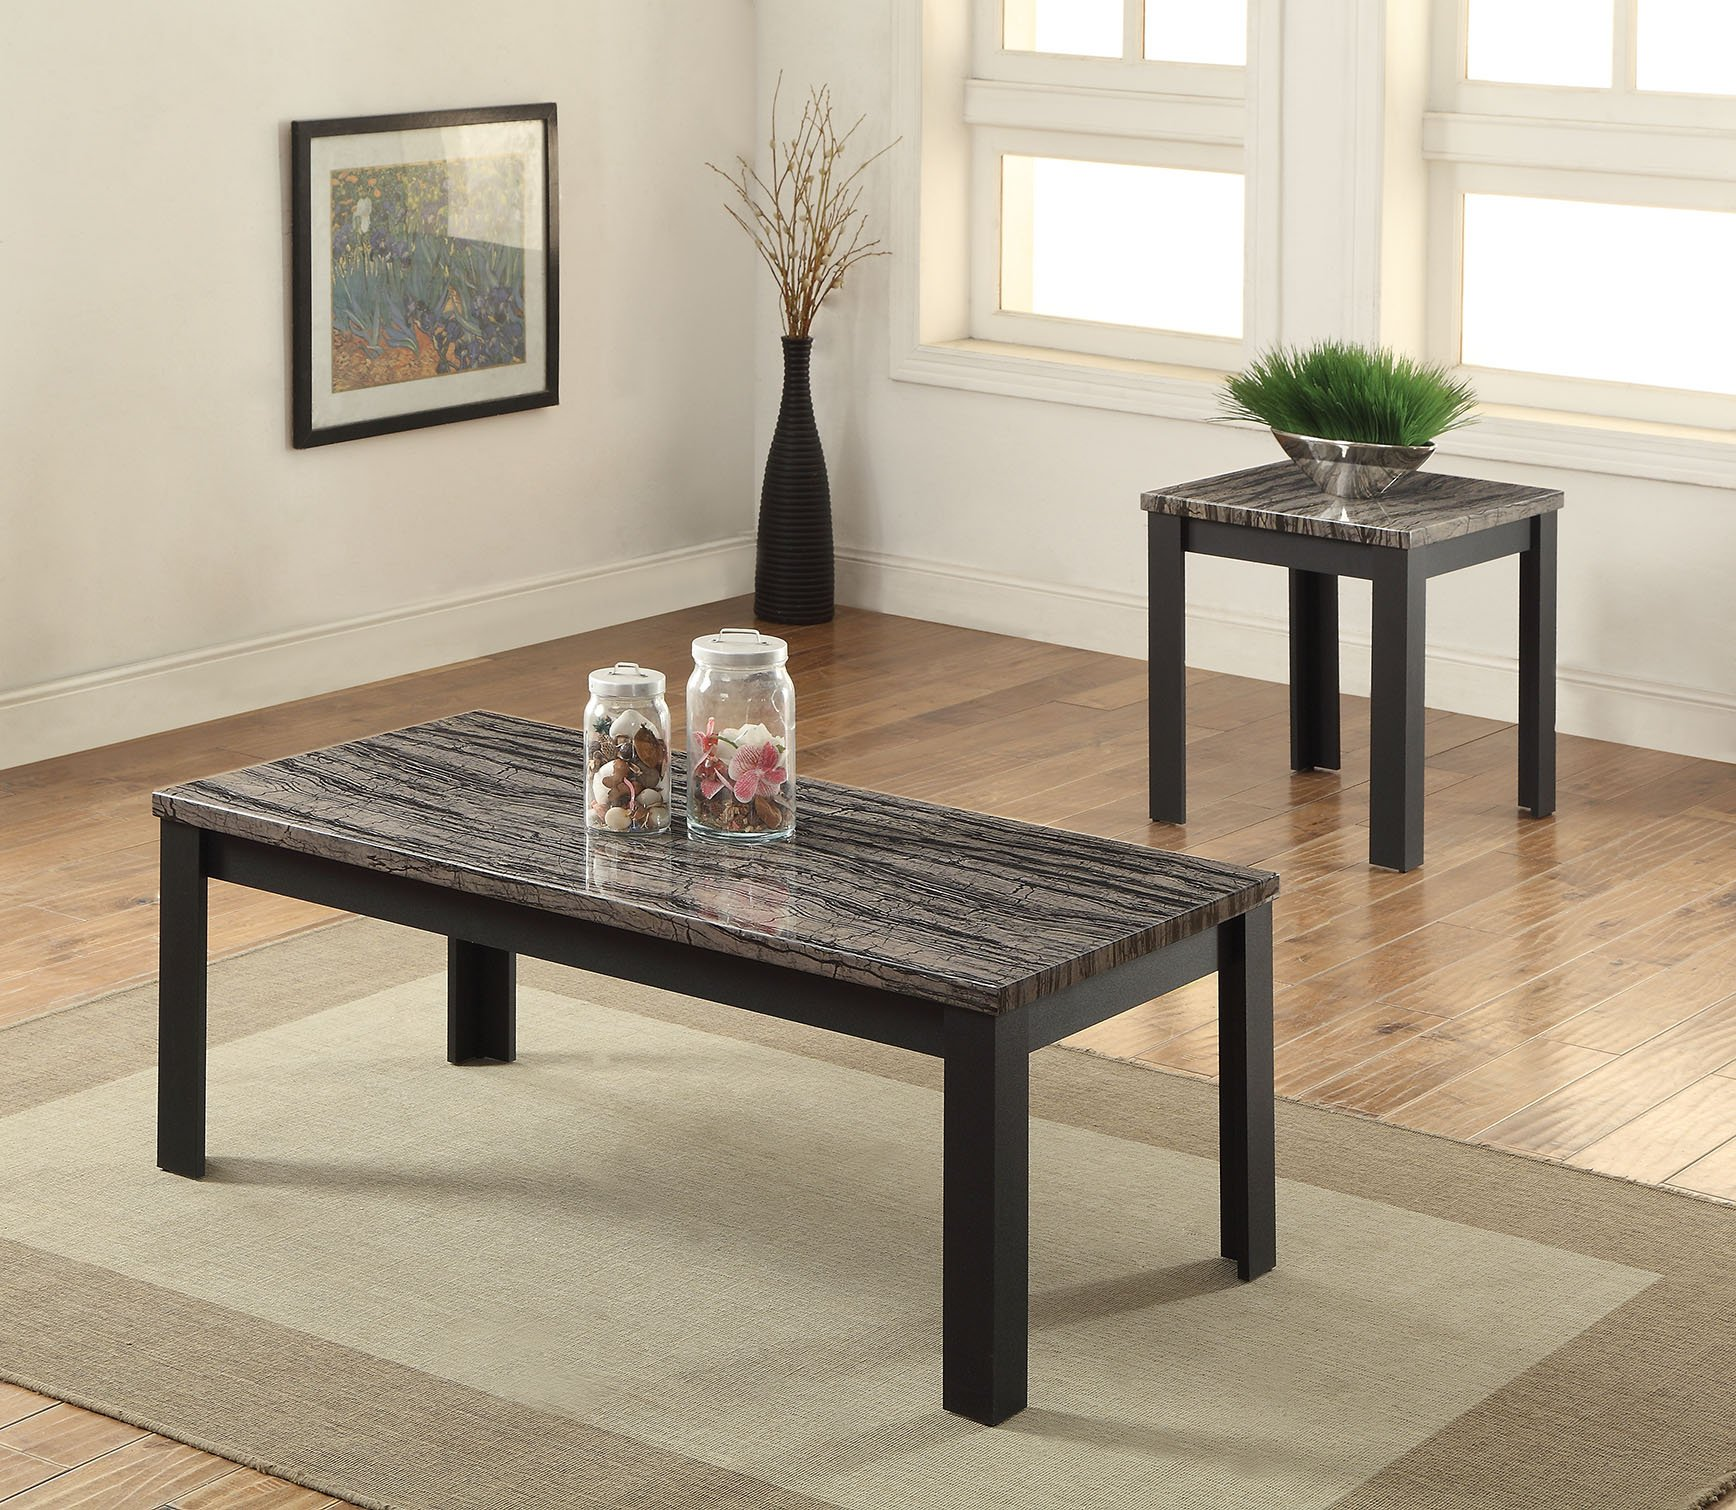 Acme 2 Piece Arabia Coffee/End Table Set, Faux Marble & Black by Acme Furniture